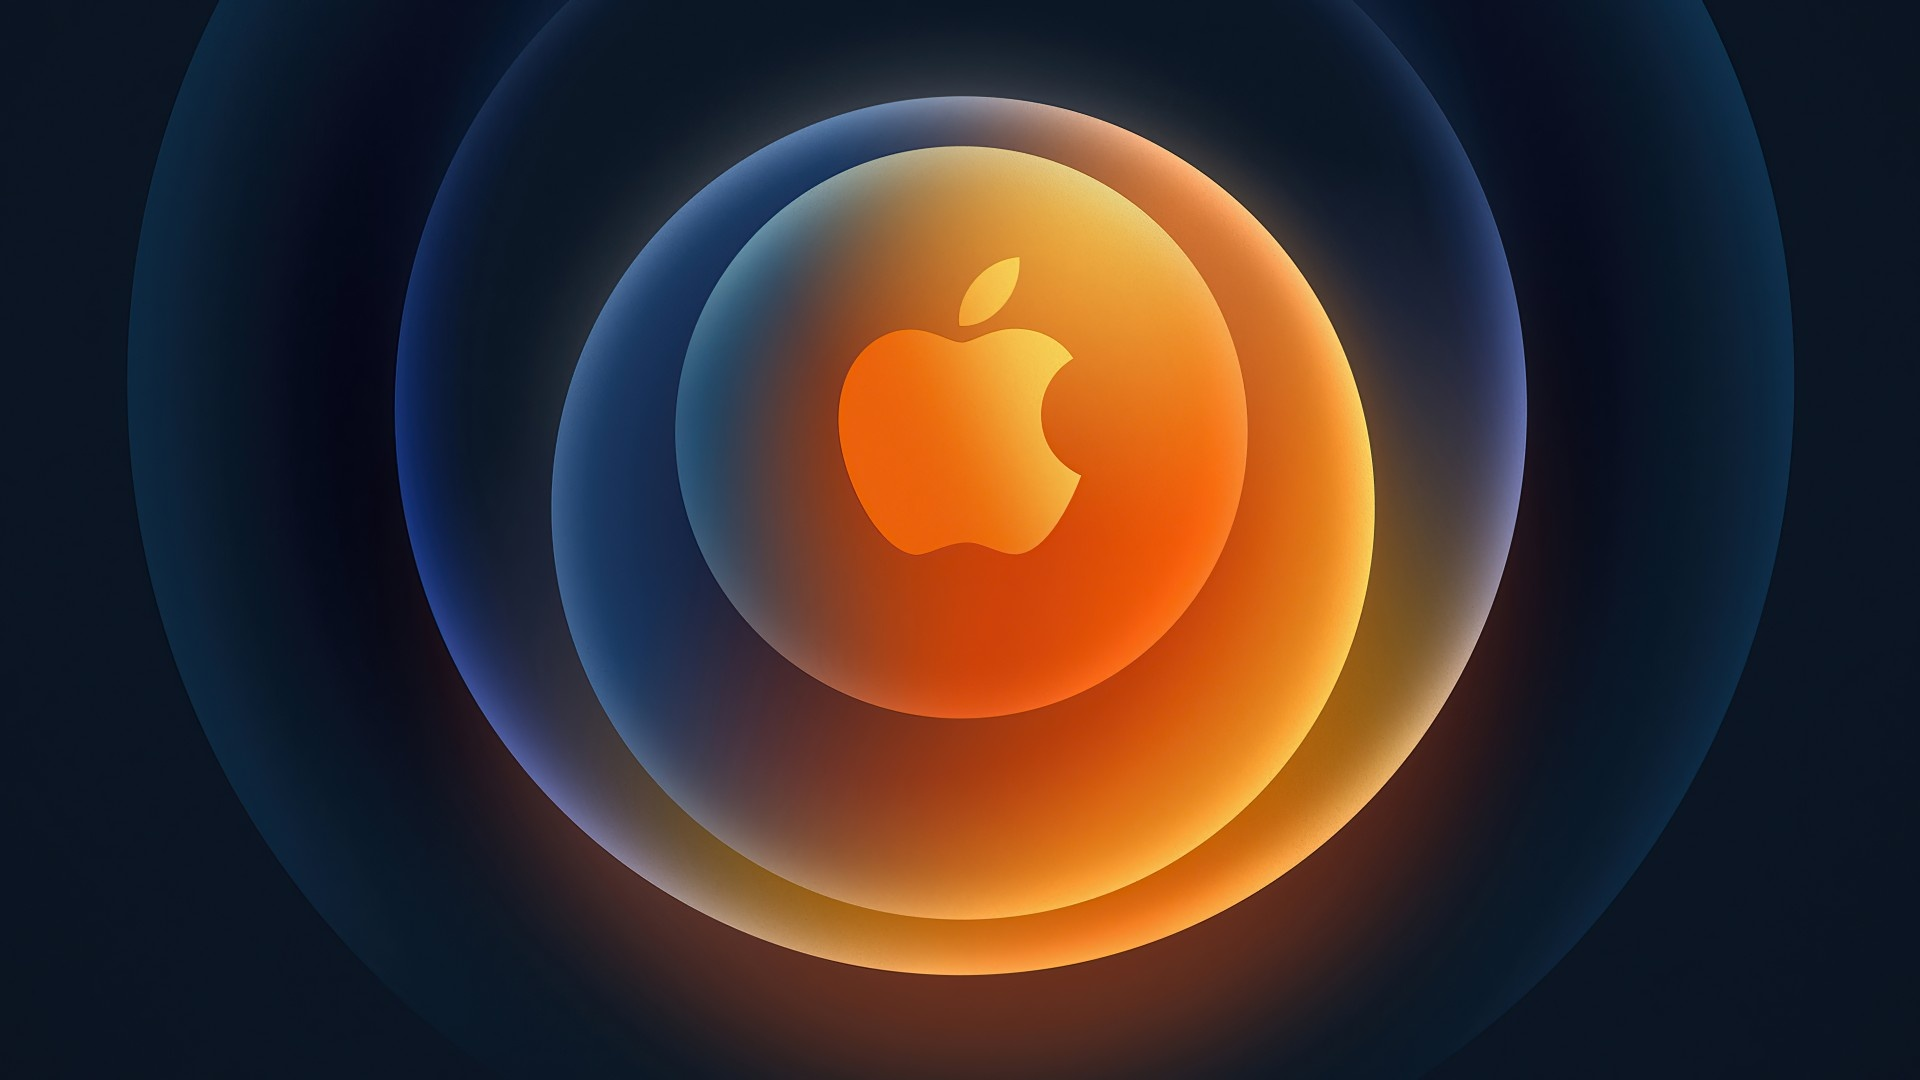 Apple Event October 2020 background picture